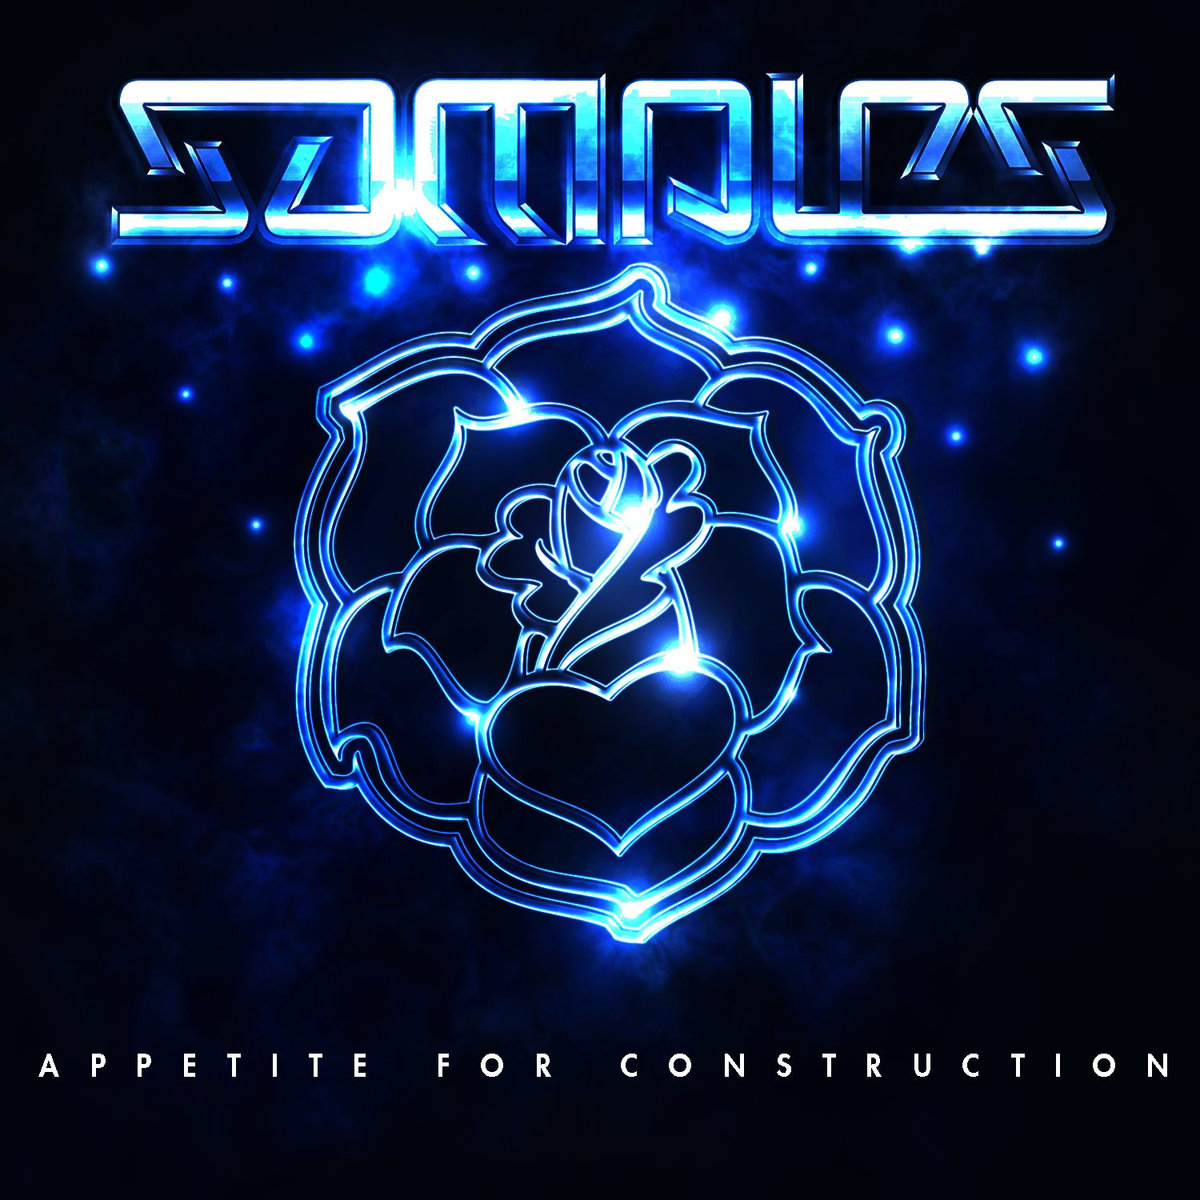 Samples - Get Cray @ 'Appetite for Construction' album (electronic, dubstep)